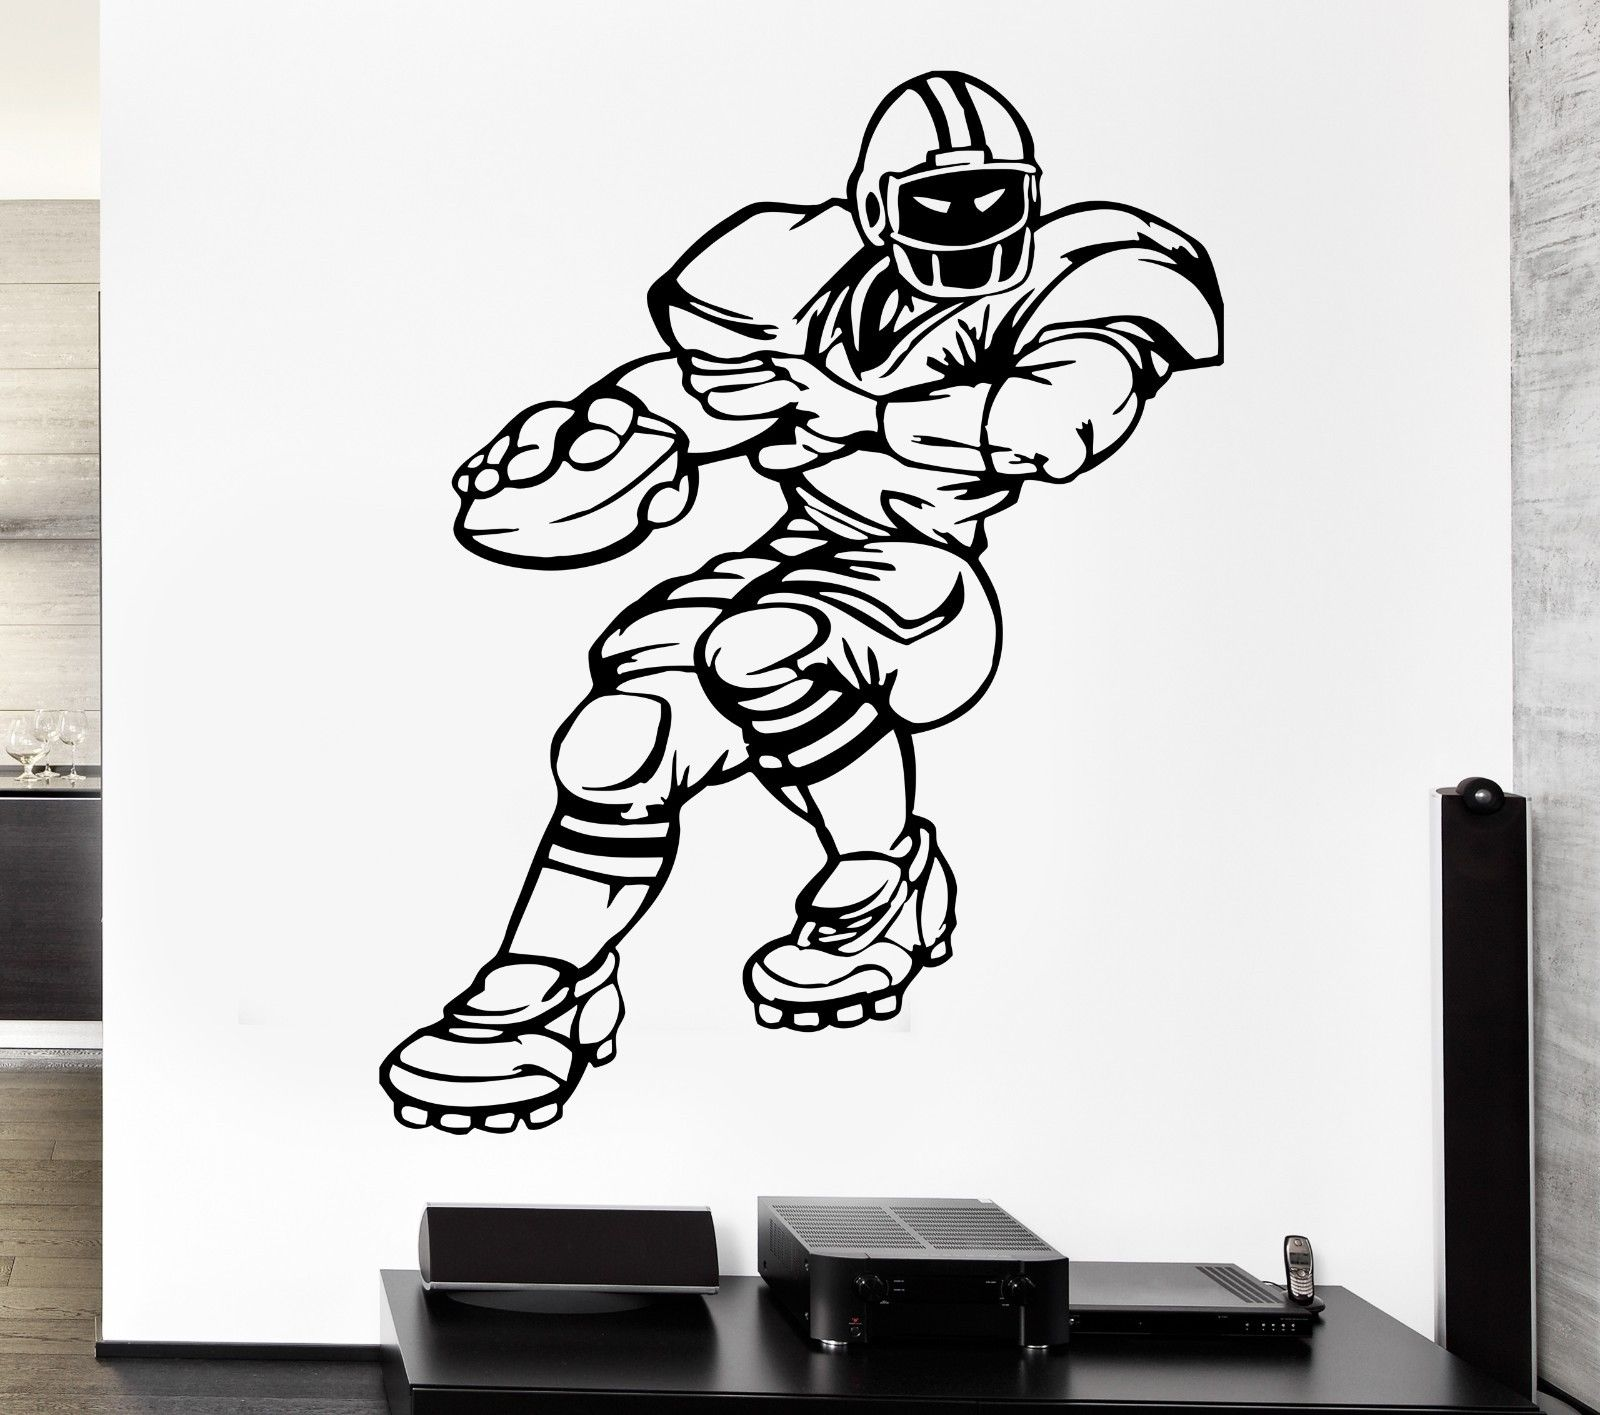 new kids room Wall Decal Sports Game Football Player Strong Uniforms Vinyl Stickers free shipping(China (Mainland))